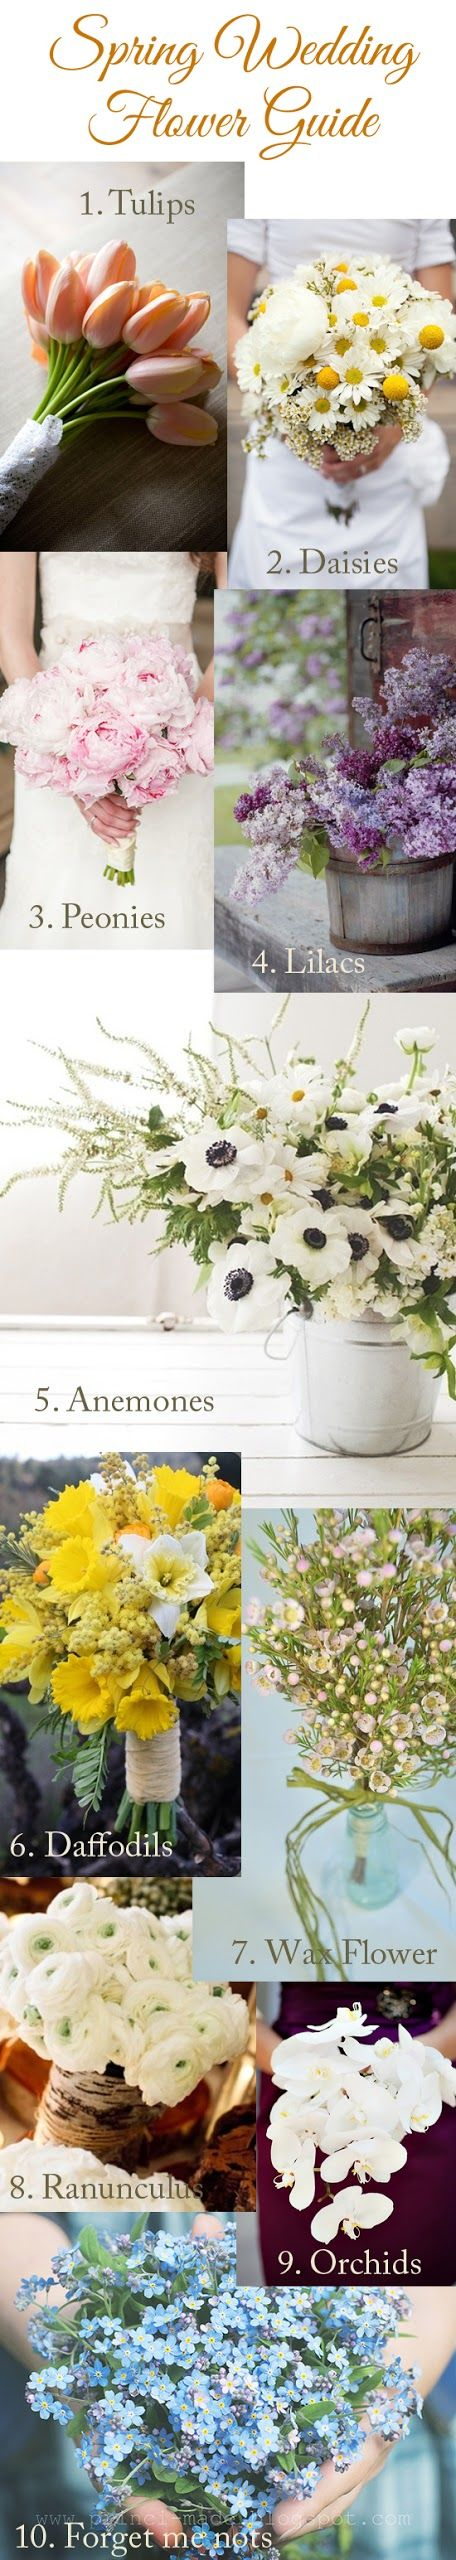 Spring Wedding Flower Guide Pictures Photos And Images For